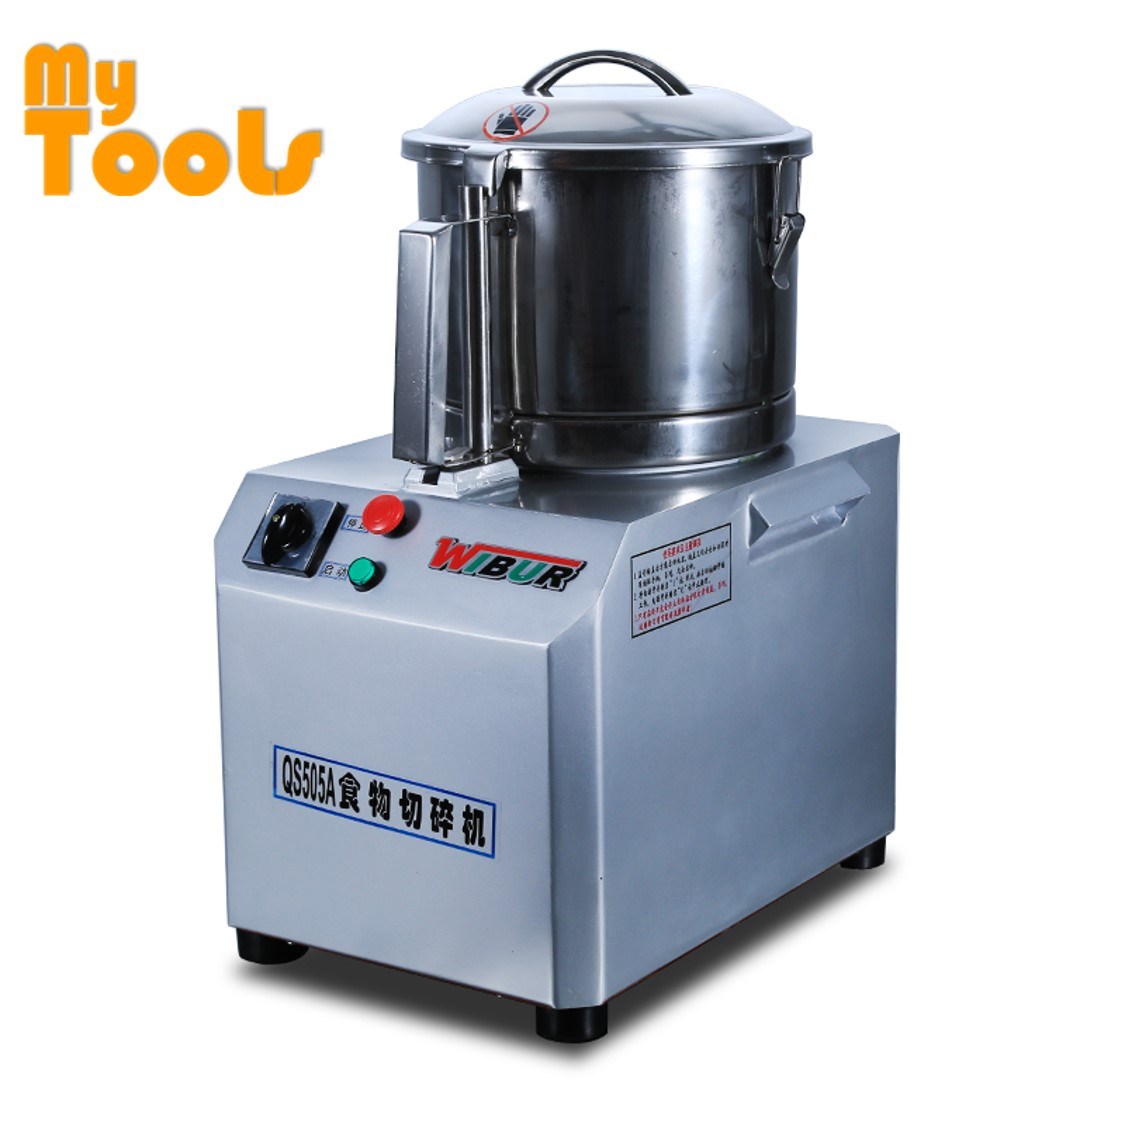 Mytools QS-505 Electric Universal Fritter Heavy Duty Blender Meat Chopper Machine Mincer Grinder